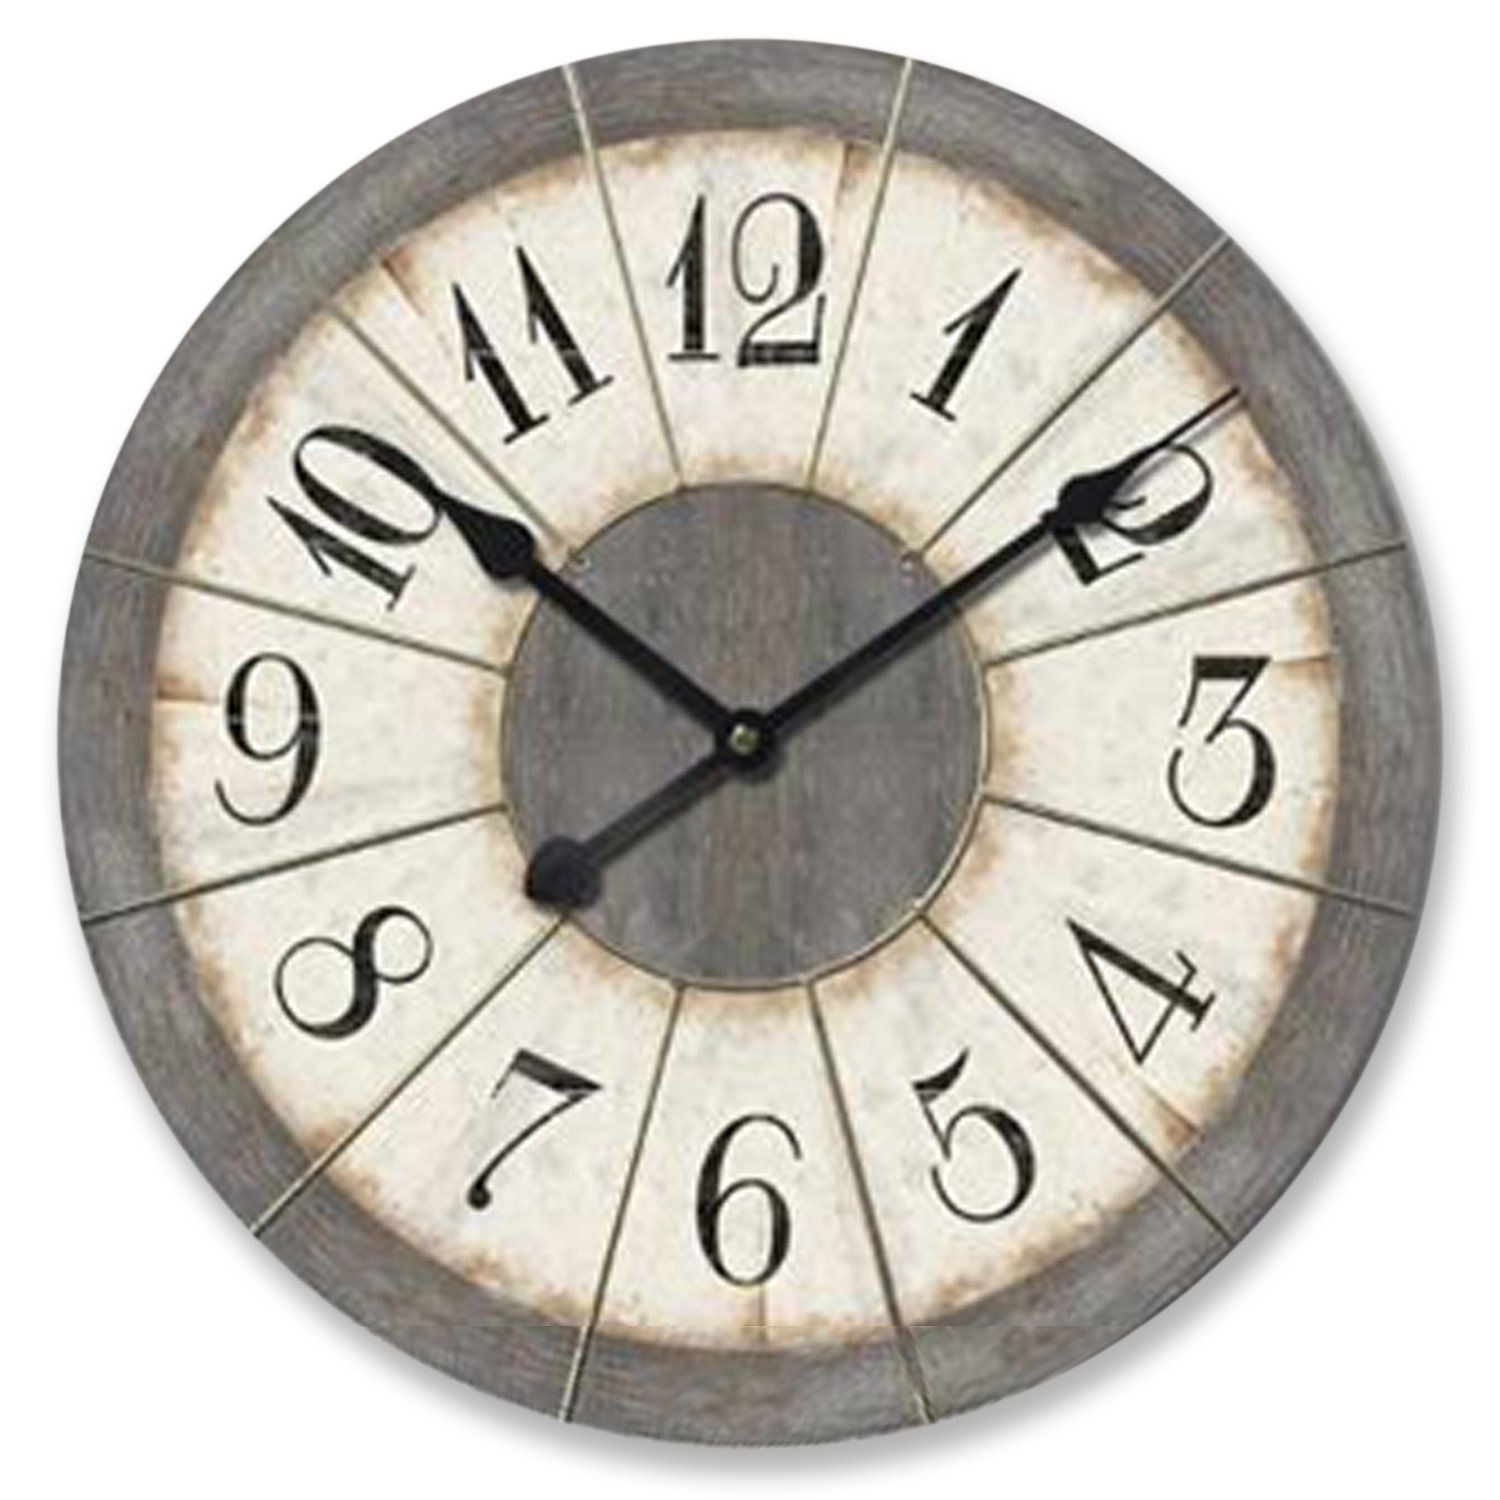 Big Clocks For Wall Stylish Large Wall Clocks Fun And Fashionable Home